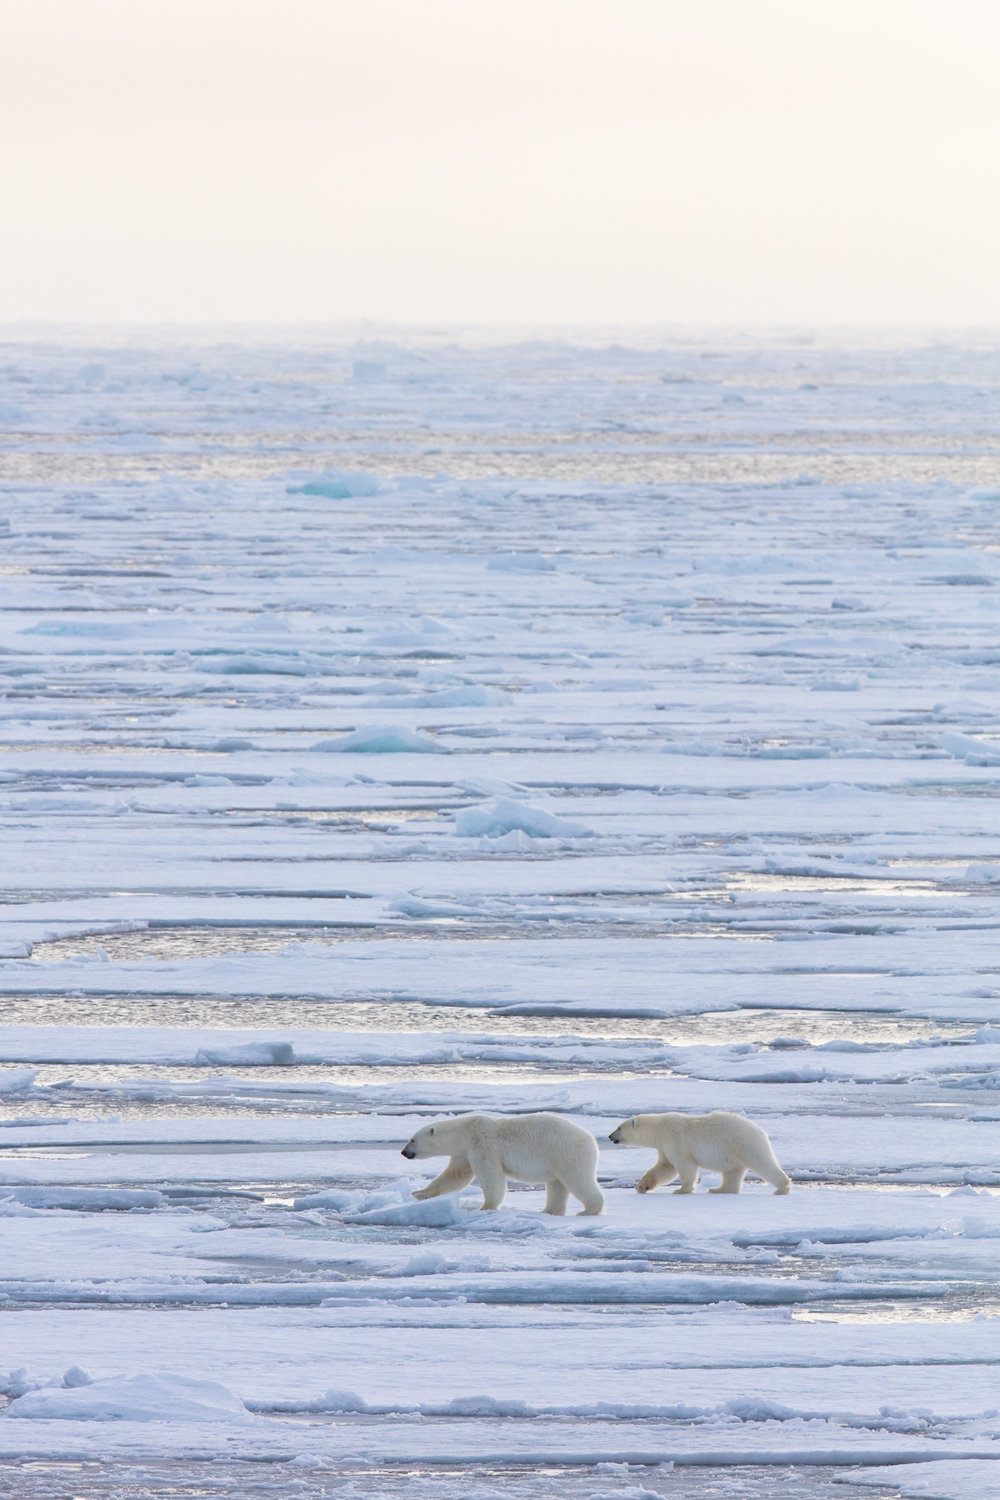 A mother polar bear guides her yearling cub among the vast islands of blue and gold ice that make up the edge of the frozen Arctic Ocean at 82°46 N. During her 30 months of motherhood, the mother bear will teach her cub how to survive and hunt in the harsh conditions of the far north. Seeing such a healthy mother and cub this year despite the poor sea ice conditions is a relieving testament to the mother's ability to care for her young in even the most difficult of circumstances. This mother and cub are among the lucky ones who were able to follow the ice as it retreated far north this summer. As sea ice becomes less reliable in the warming arctic, polar bear motherhood is increasingly a monumental challenge. Without sea ice to hunt on, a polar bear mother cannot provide enough food to care for her young, making it crucially important for people to ensure the rapidly approaching future of an ice-free arctic never comes.